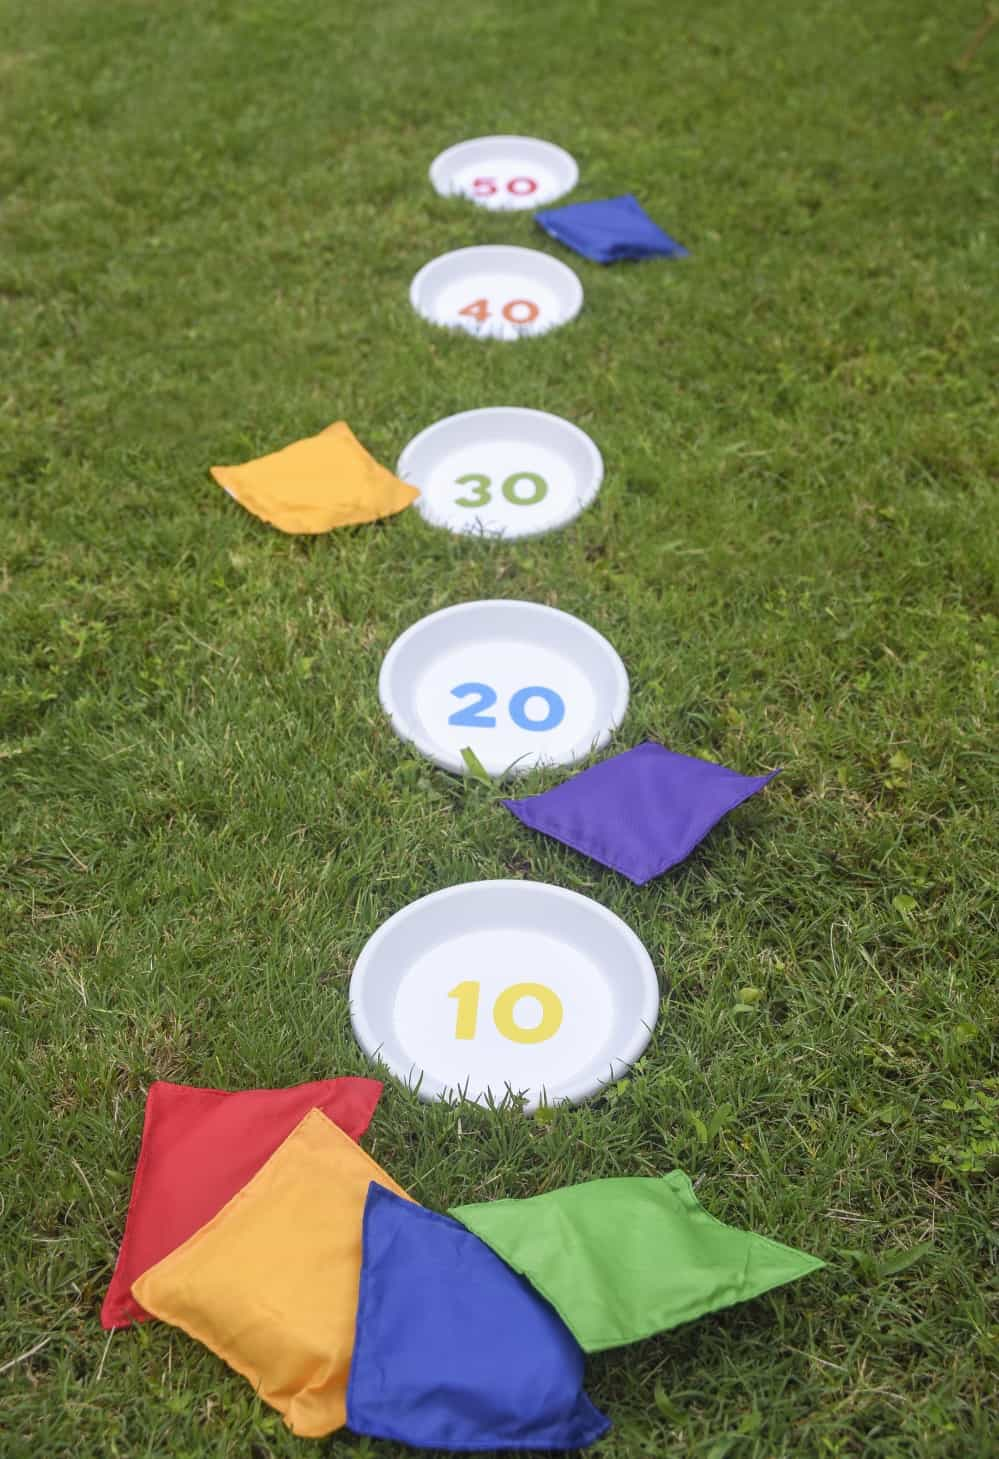 Inspired by a childhood game, I created a DIY bean bag toss using clay saucers and a printable. It's easy to assemble and you'll have a blast!